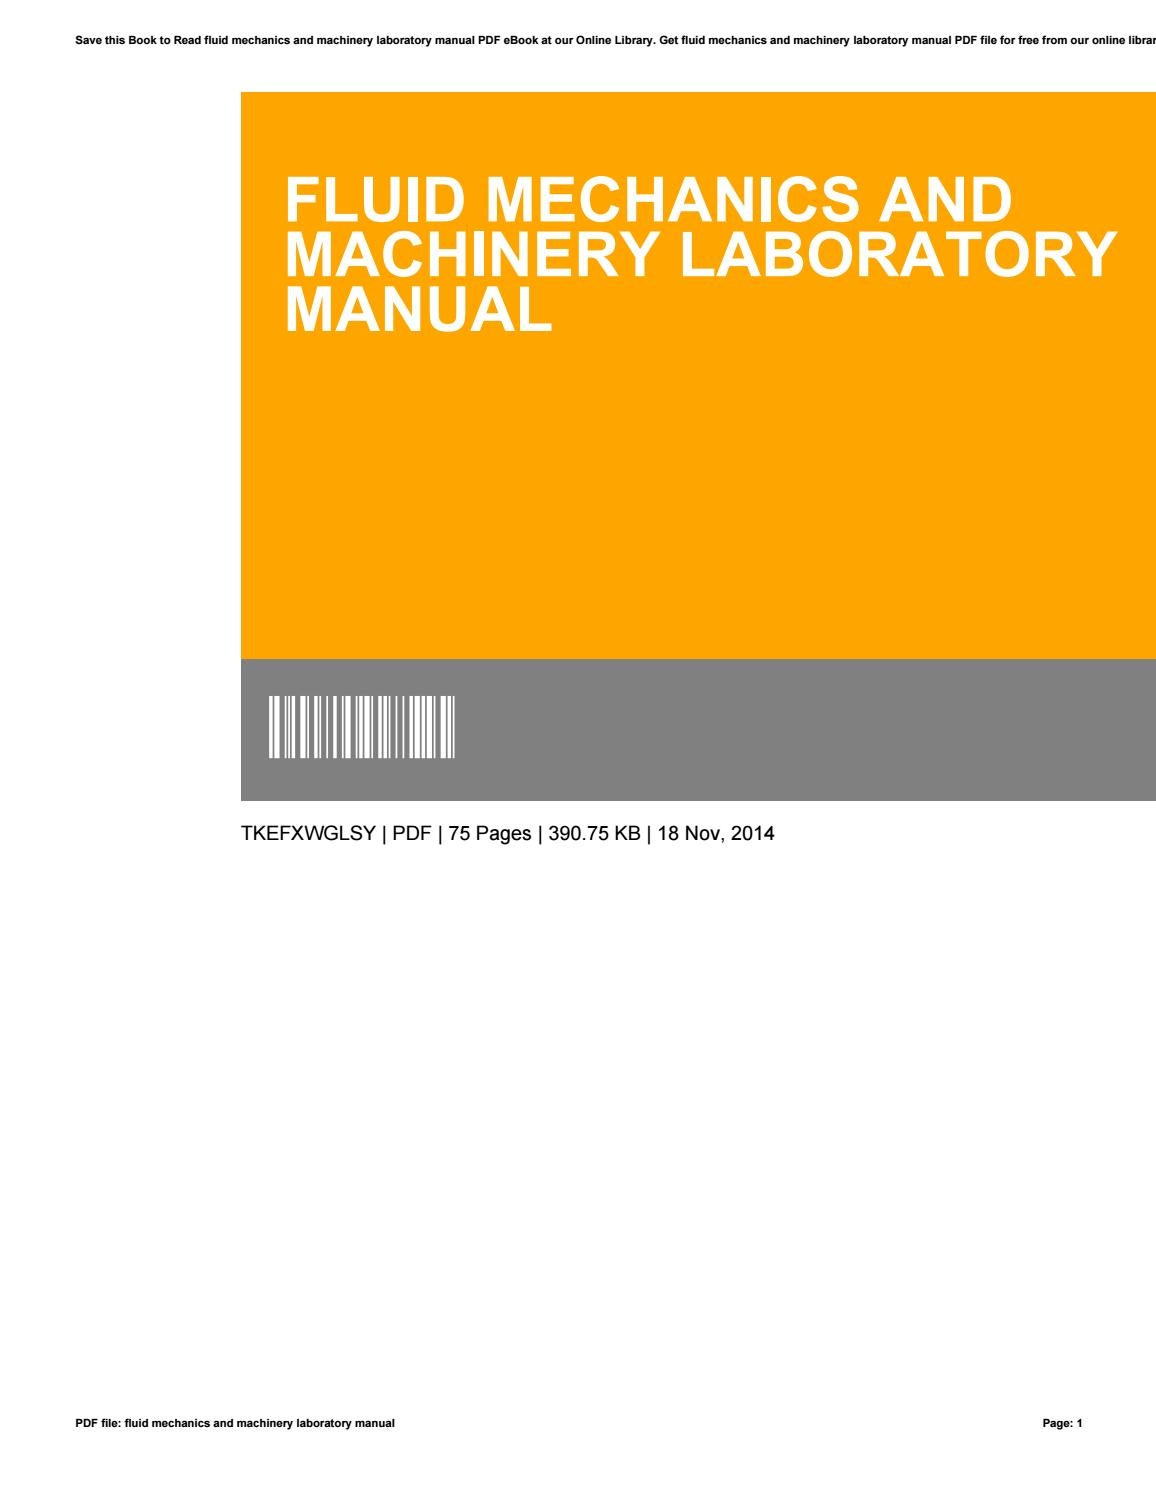 Fluid mechanics and machinery laboratory manual by MargueriteHirsch4701 -  issuu